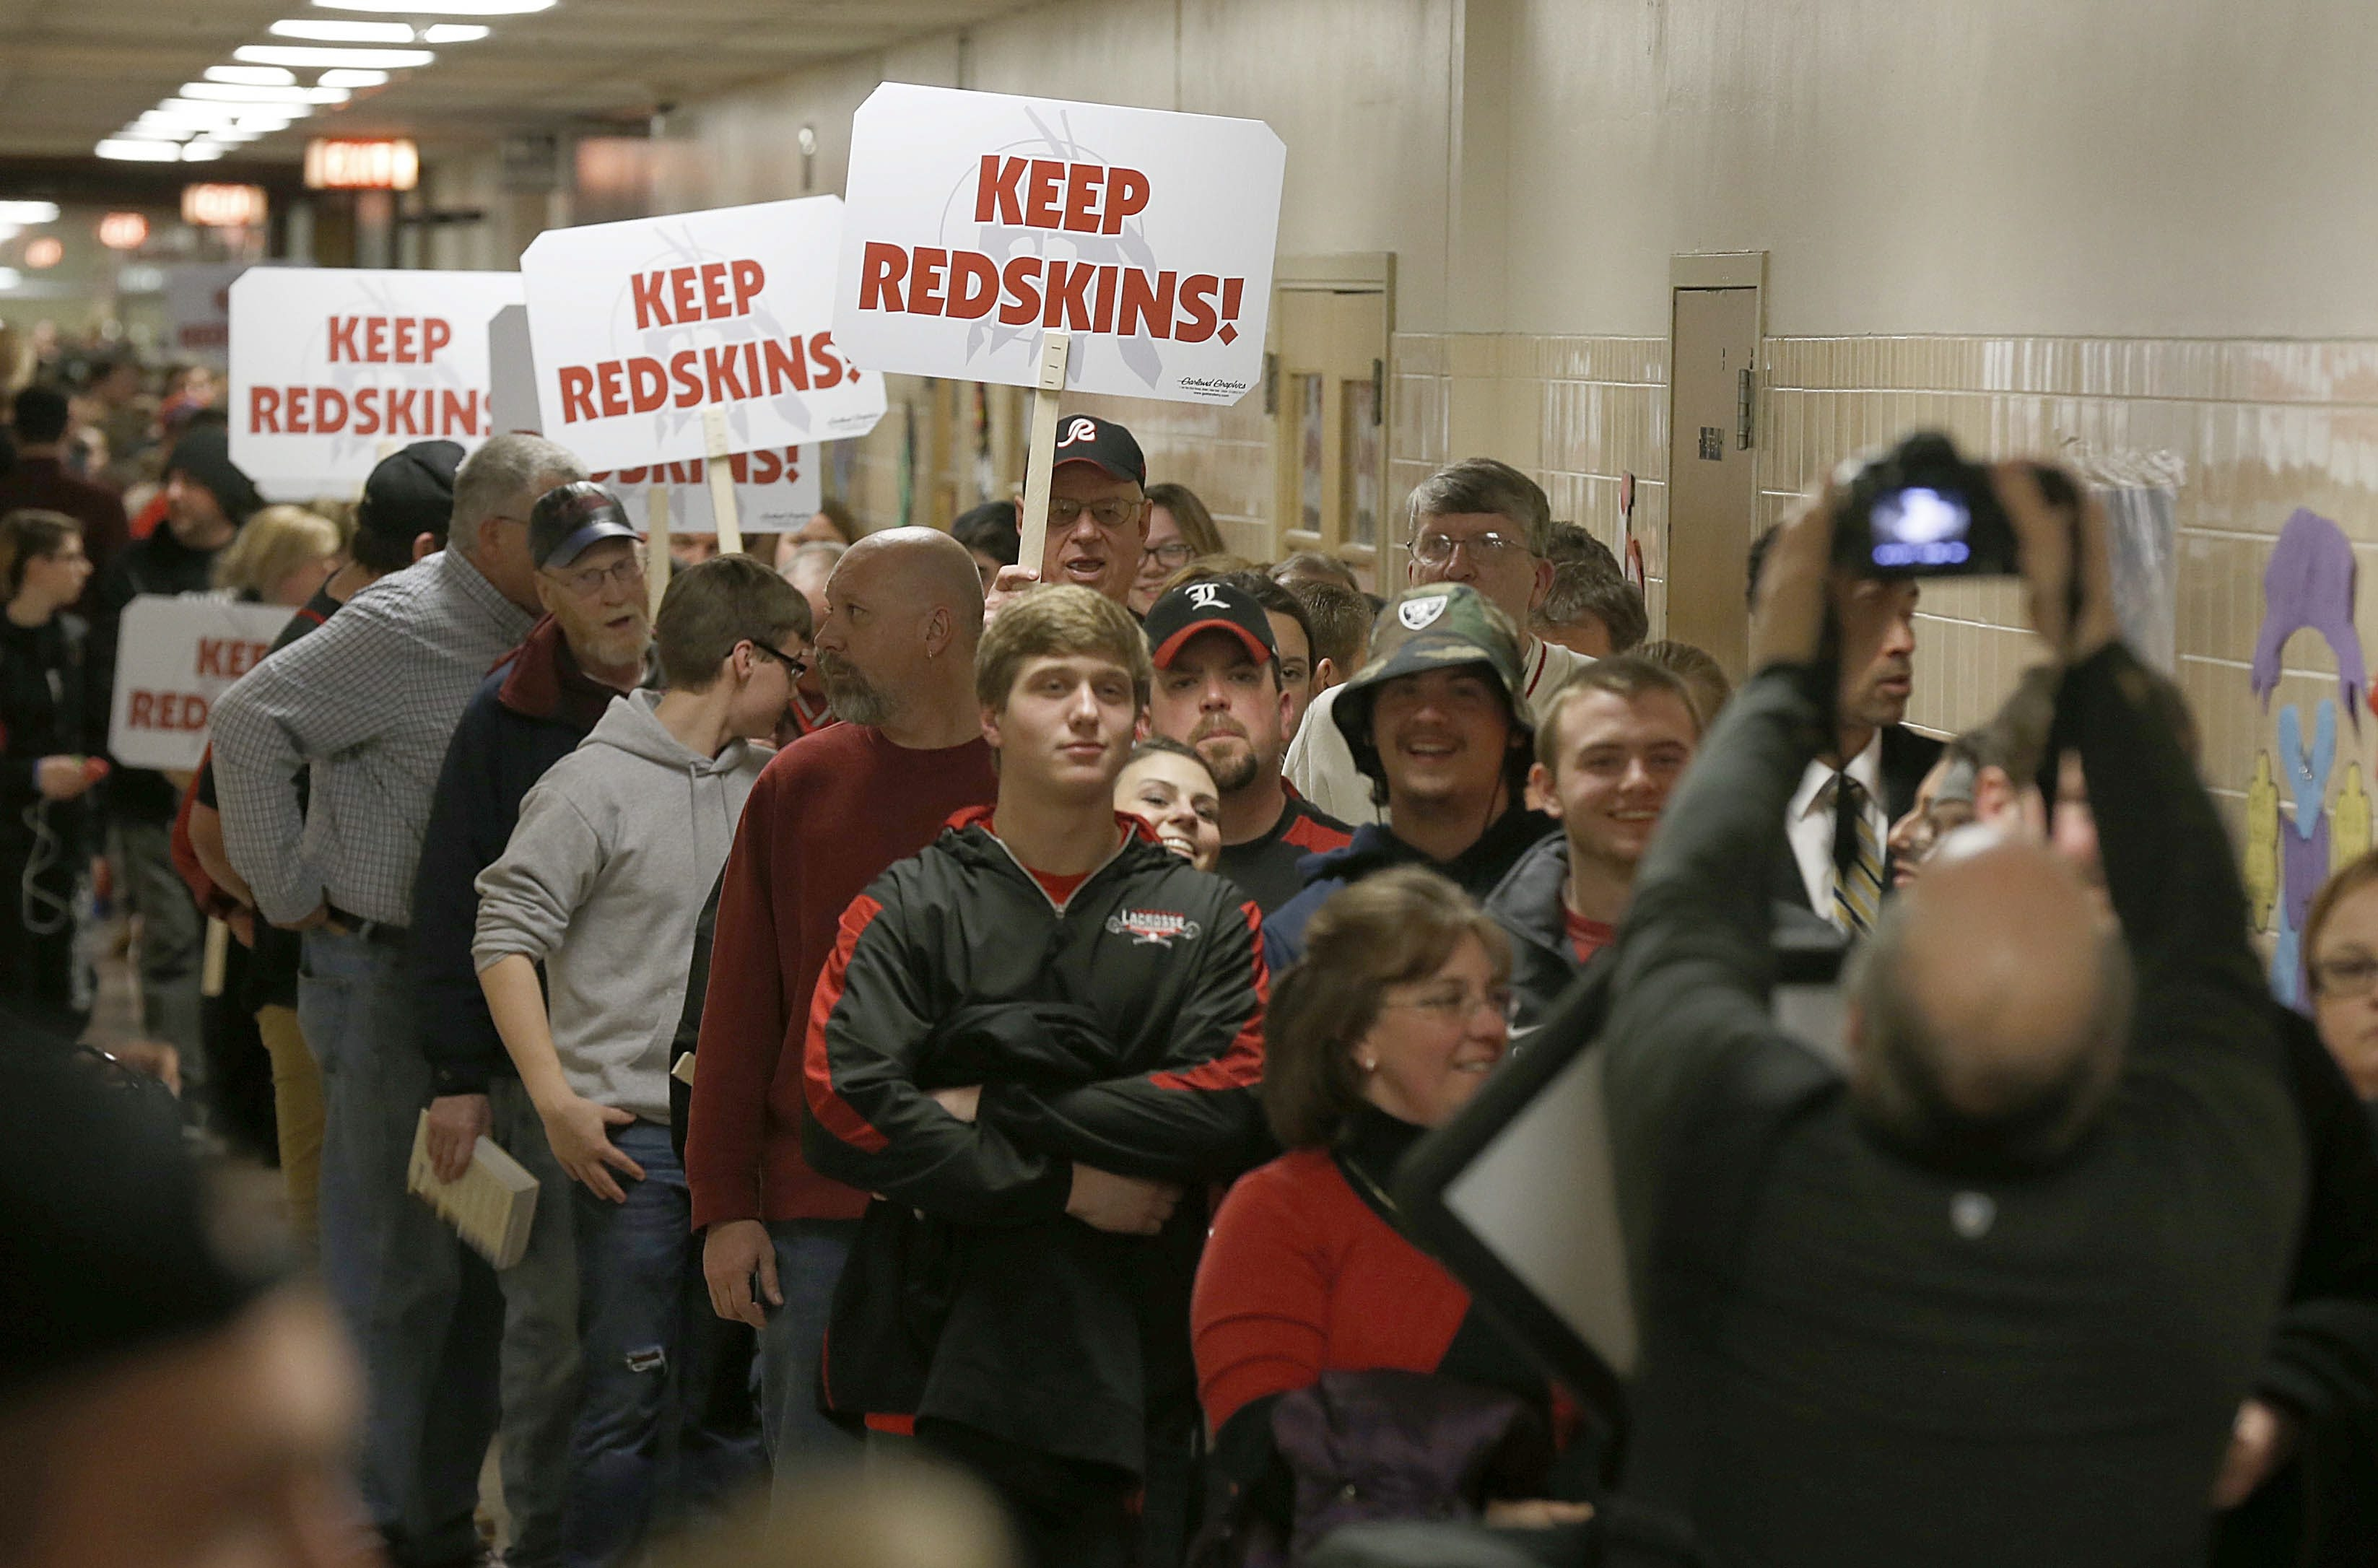 """A large crowd in support of keeping the """"Redskin"""" mascot name and those opposed line the entire hallway of Lancaster High School waiting for admittance into the community engagement session in the school's cafeteria on Tuesday, March 3, 2015. (Robert Kirkham/Buffalo News)"""